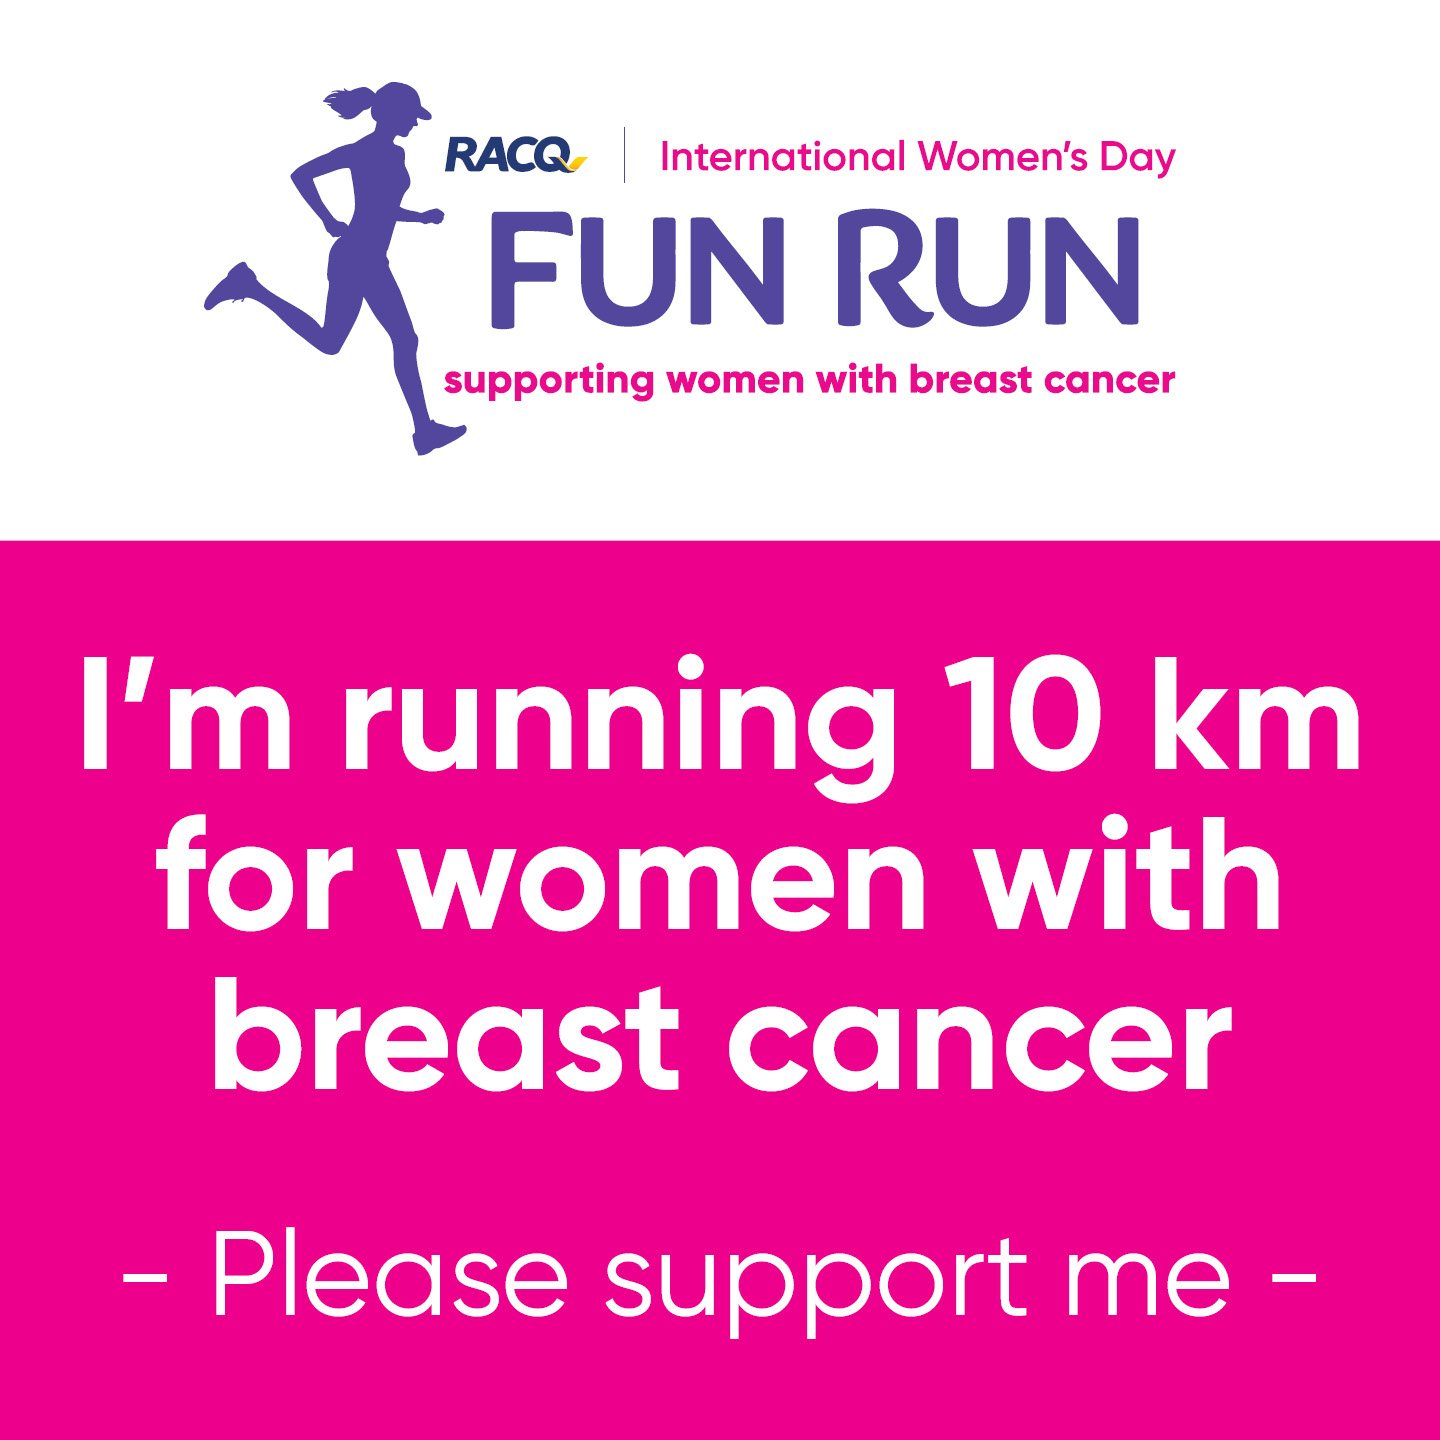 Instagram - I'm running 10 km - please support